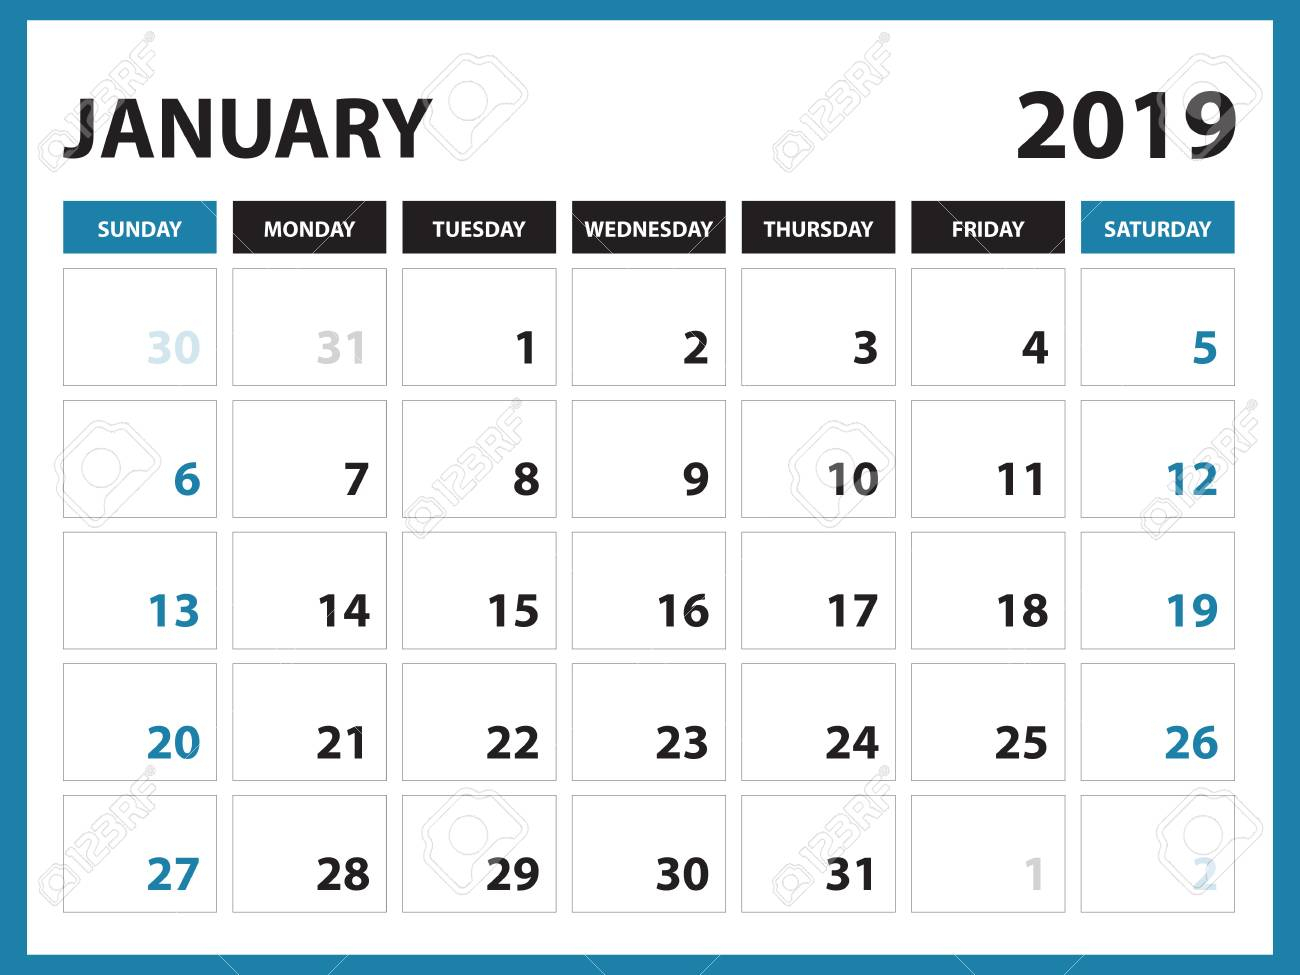 Desk Calendar For January 2019 Template, Printable Calendar,.. intended for Printable Calendar By Week